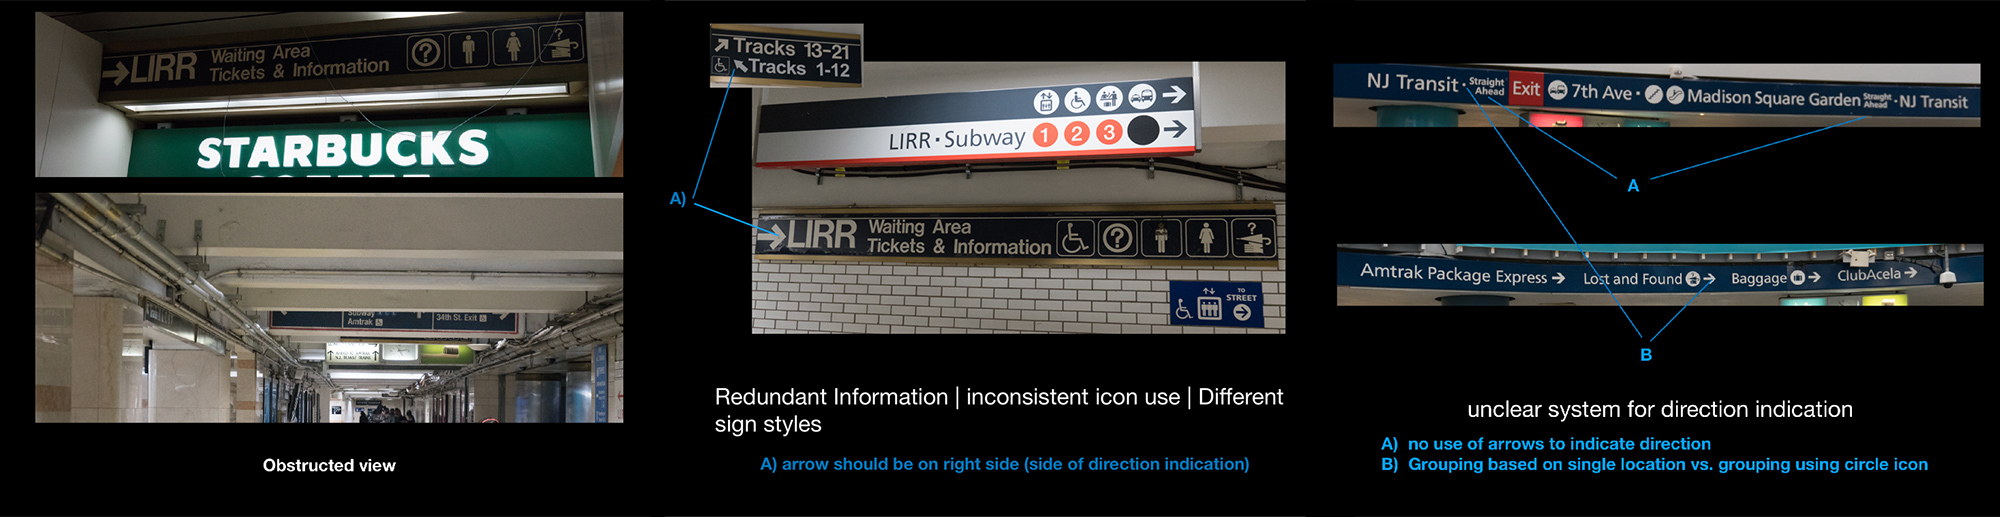 Call outs of various issues in signage communication and visibility